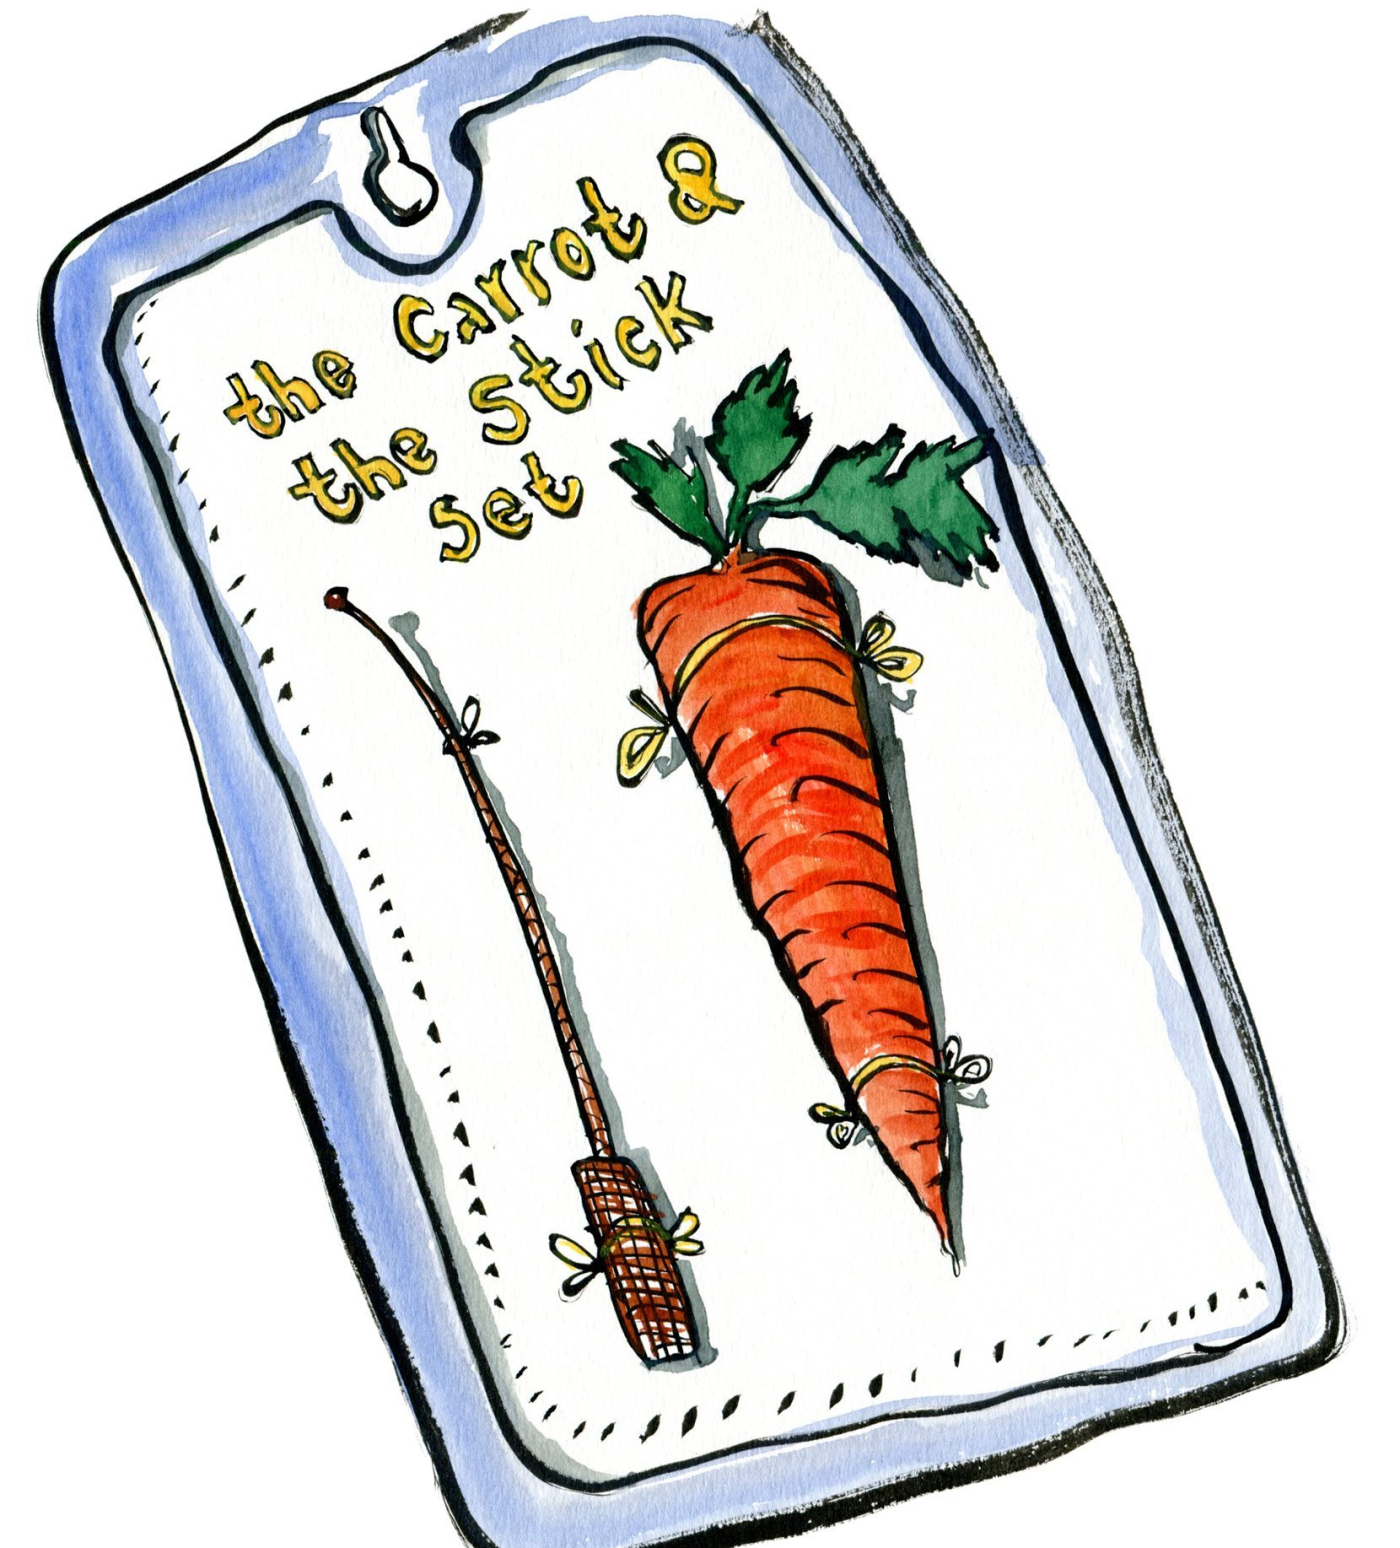 c0777-carrot-stick-set-e1566394574500